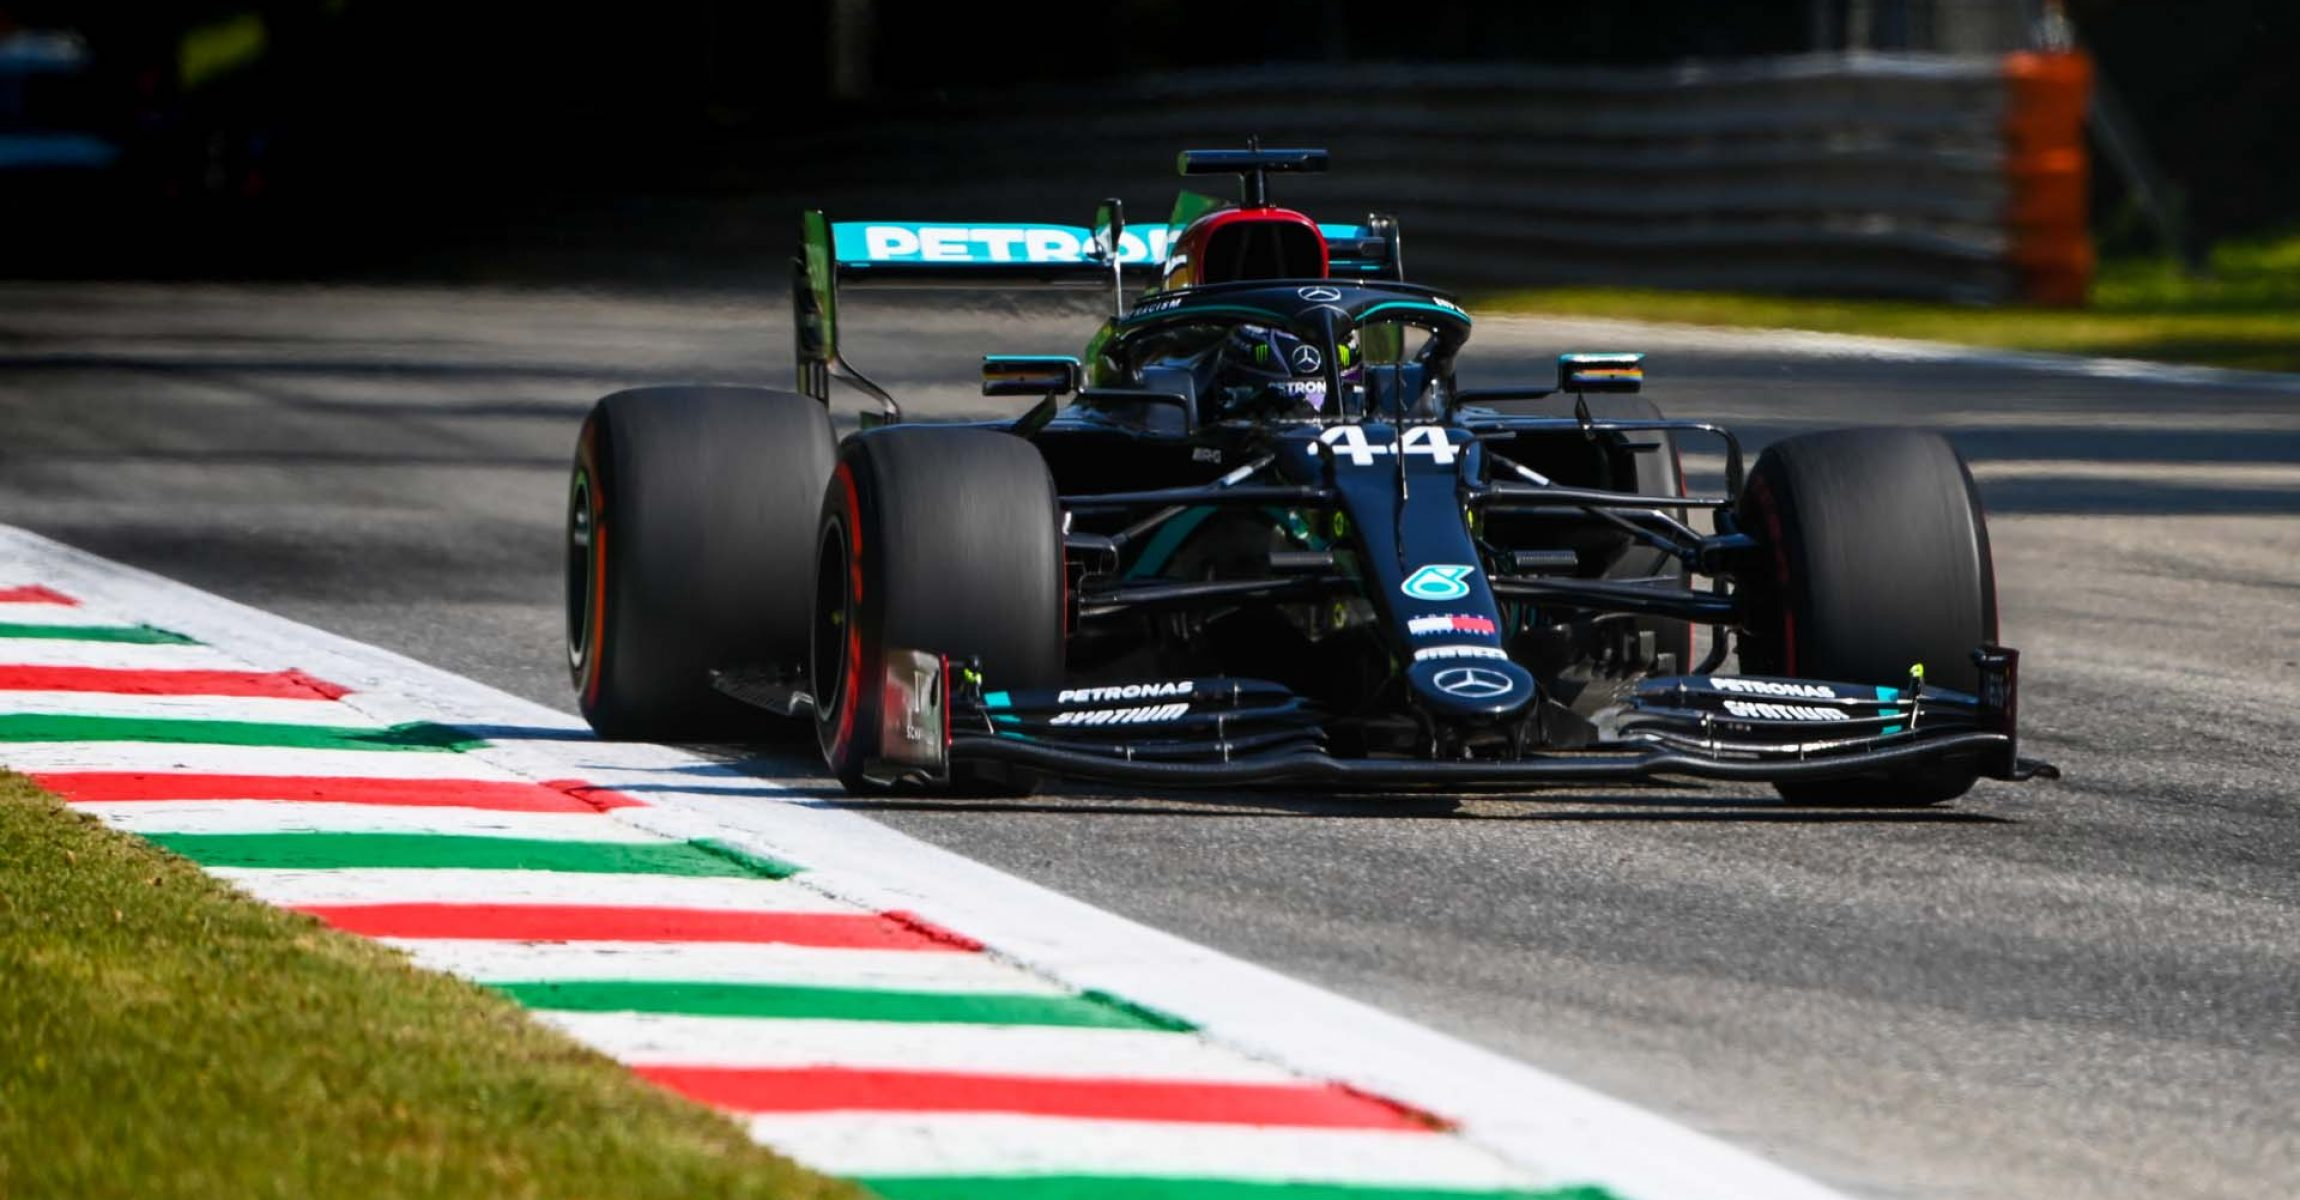 2020 Italian Grand Prix, Friday - LAT Images Lewis Hamilton Mercedes